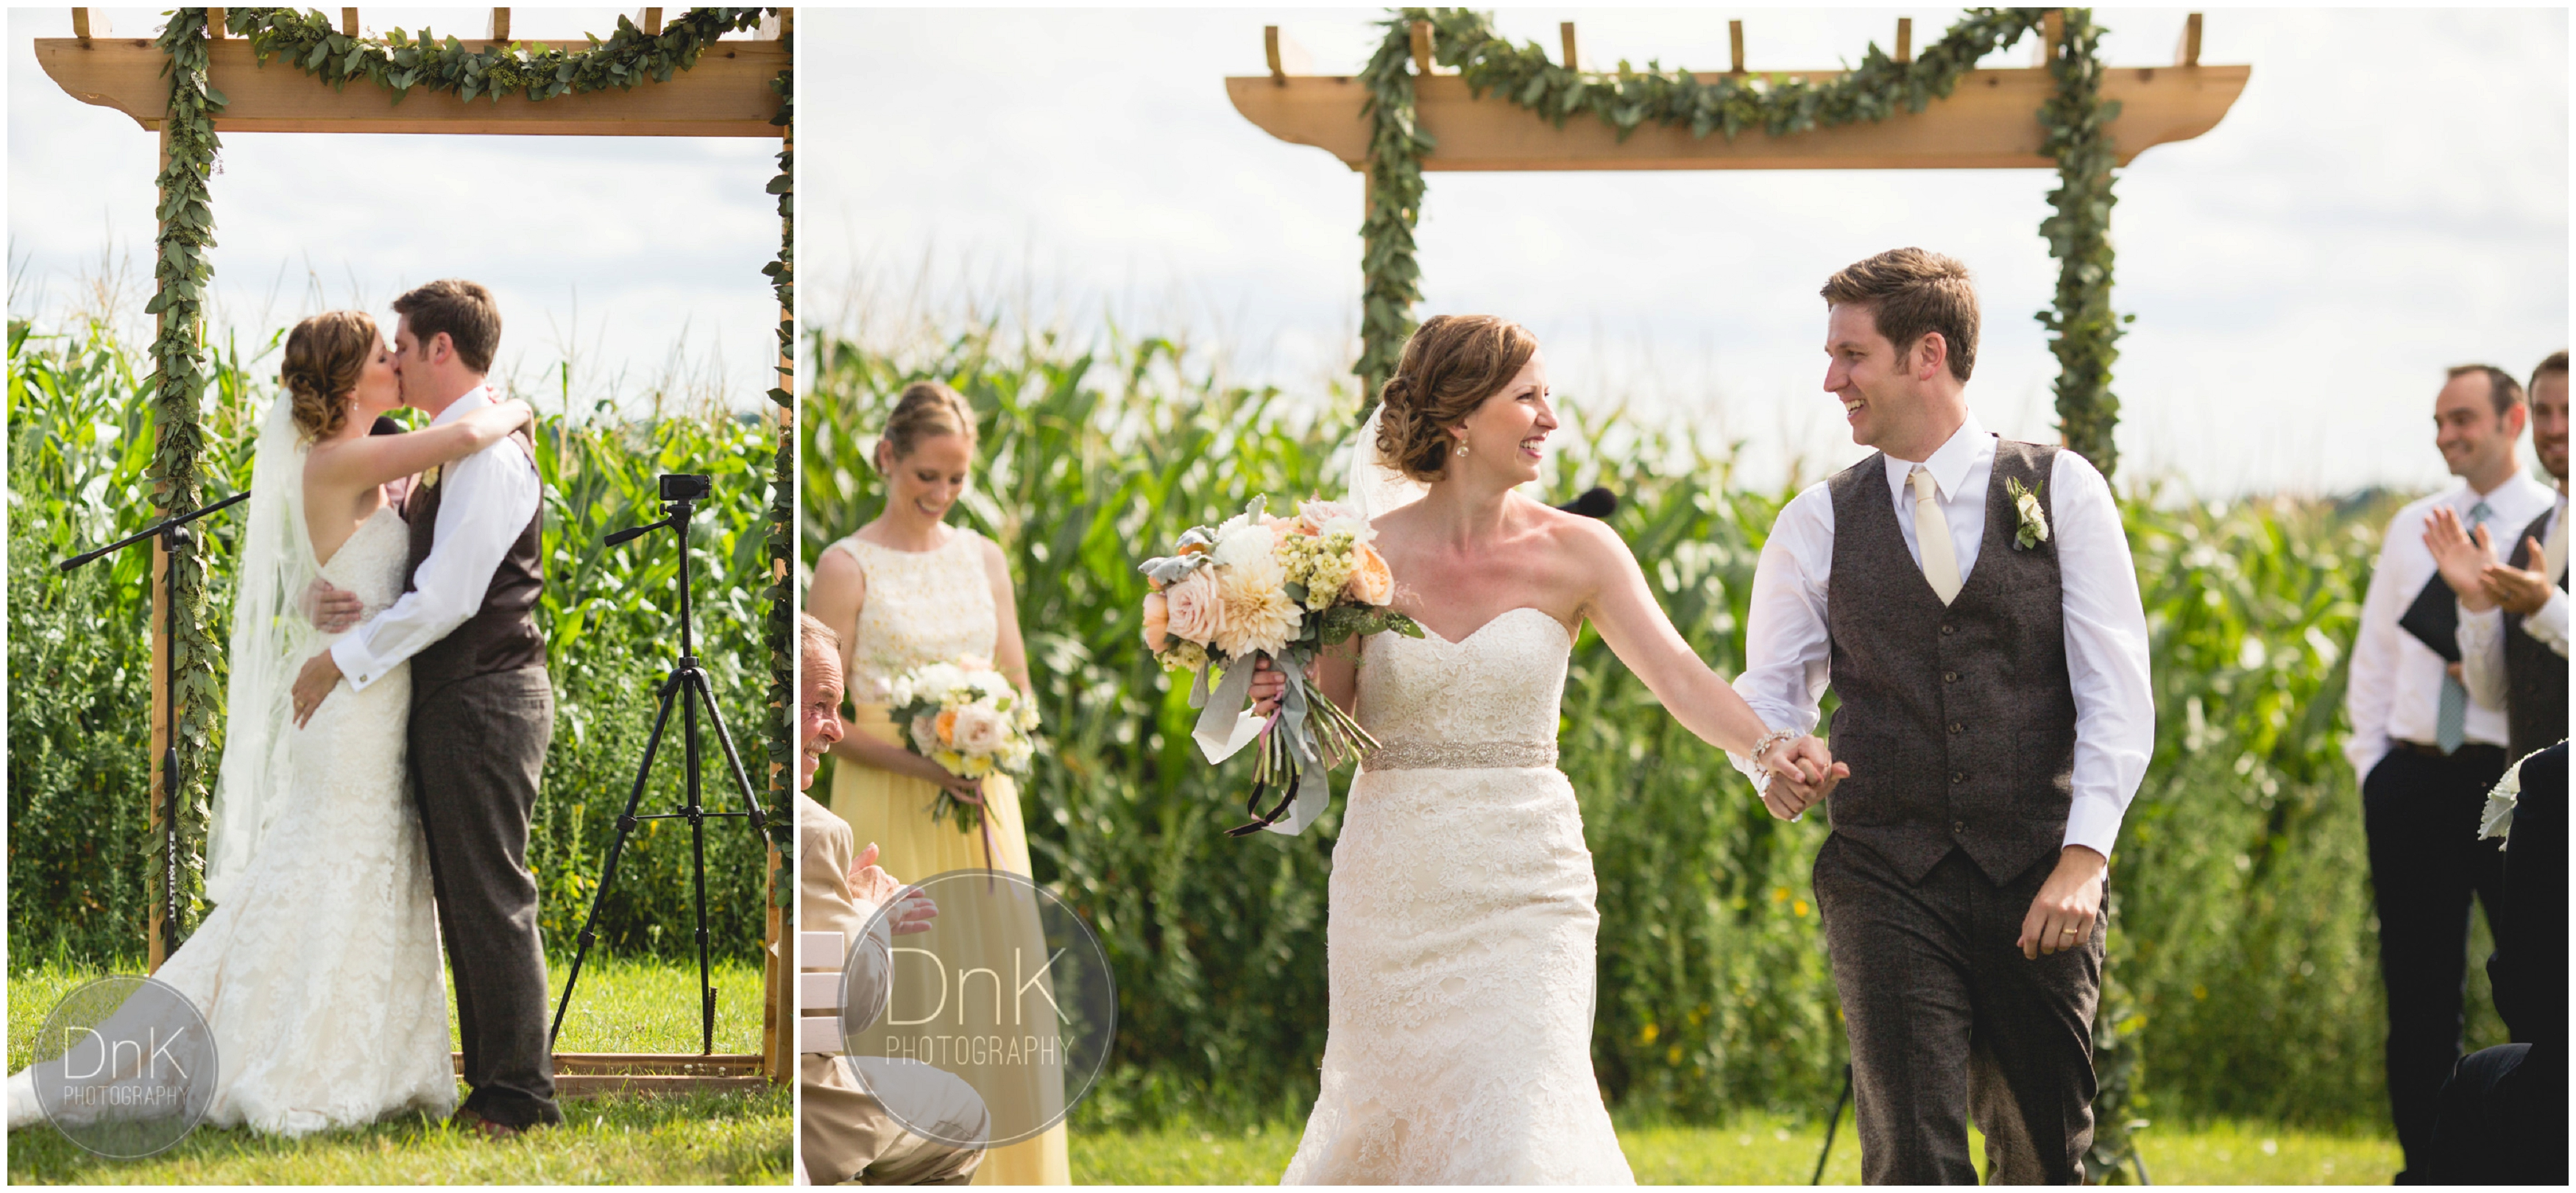 30 - Dellwood Barn Wedding Ceremony